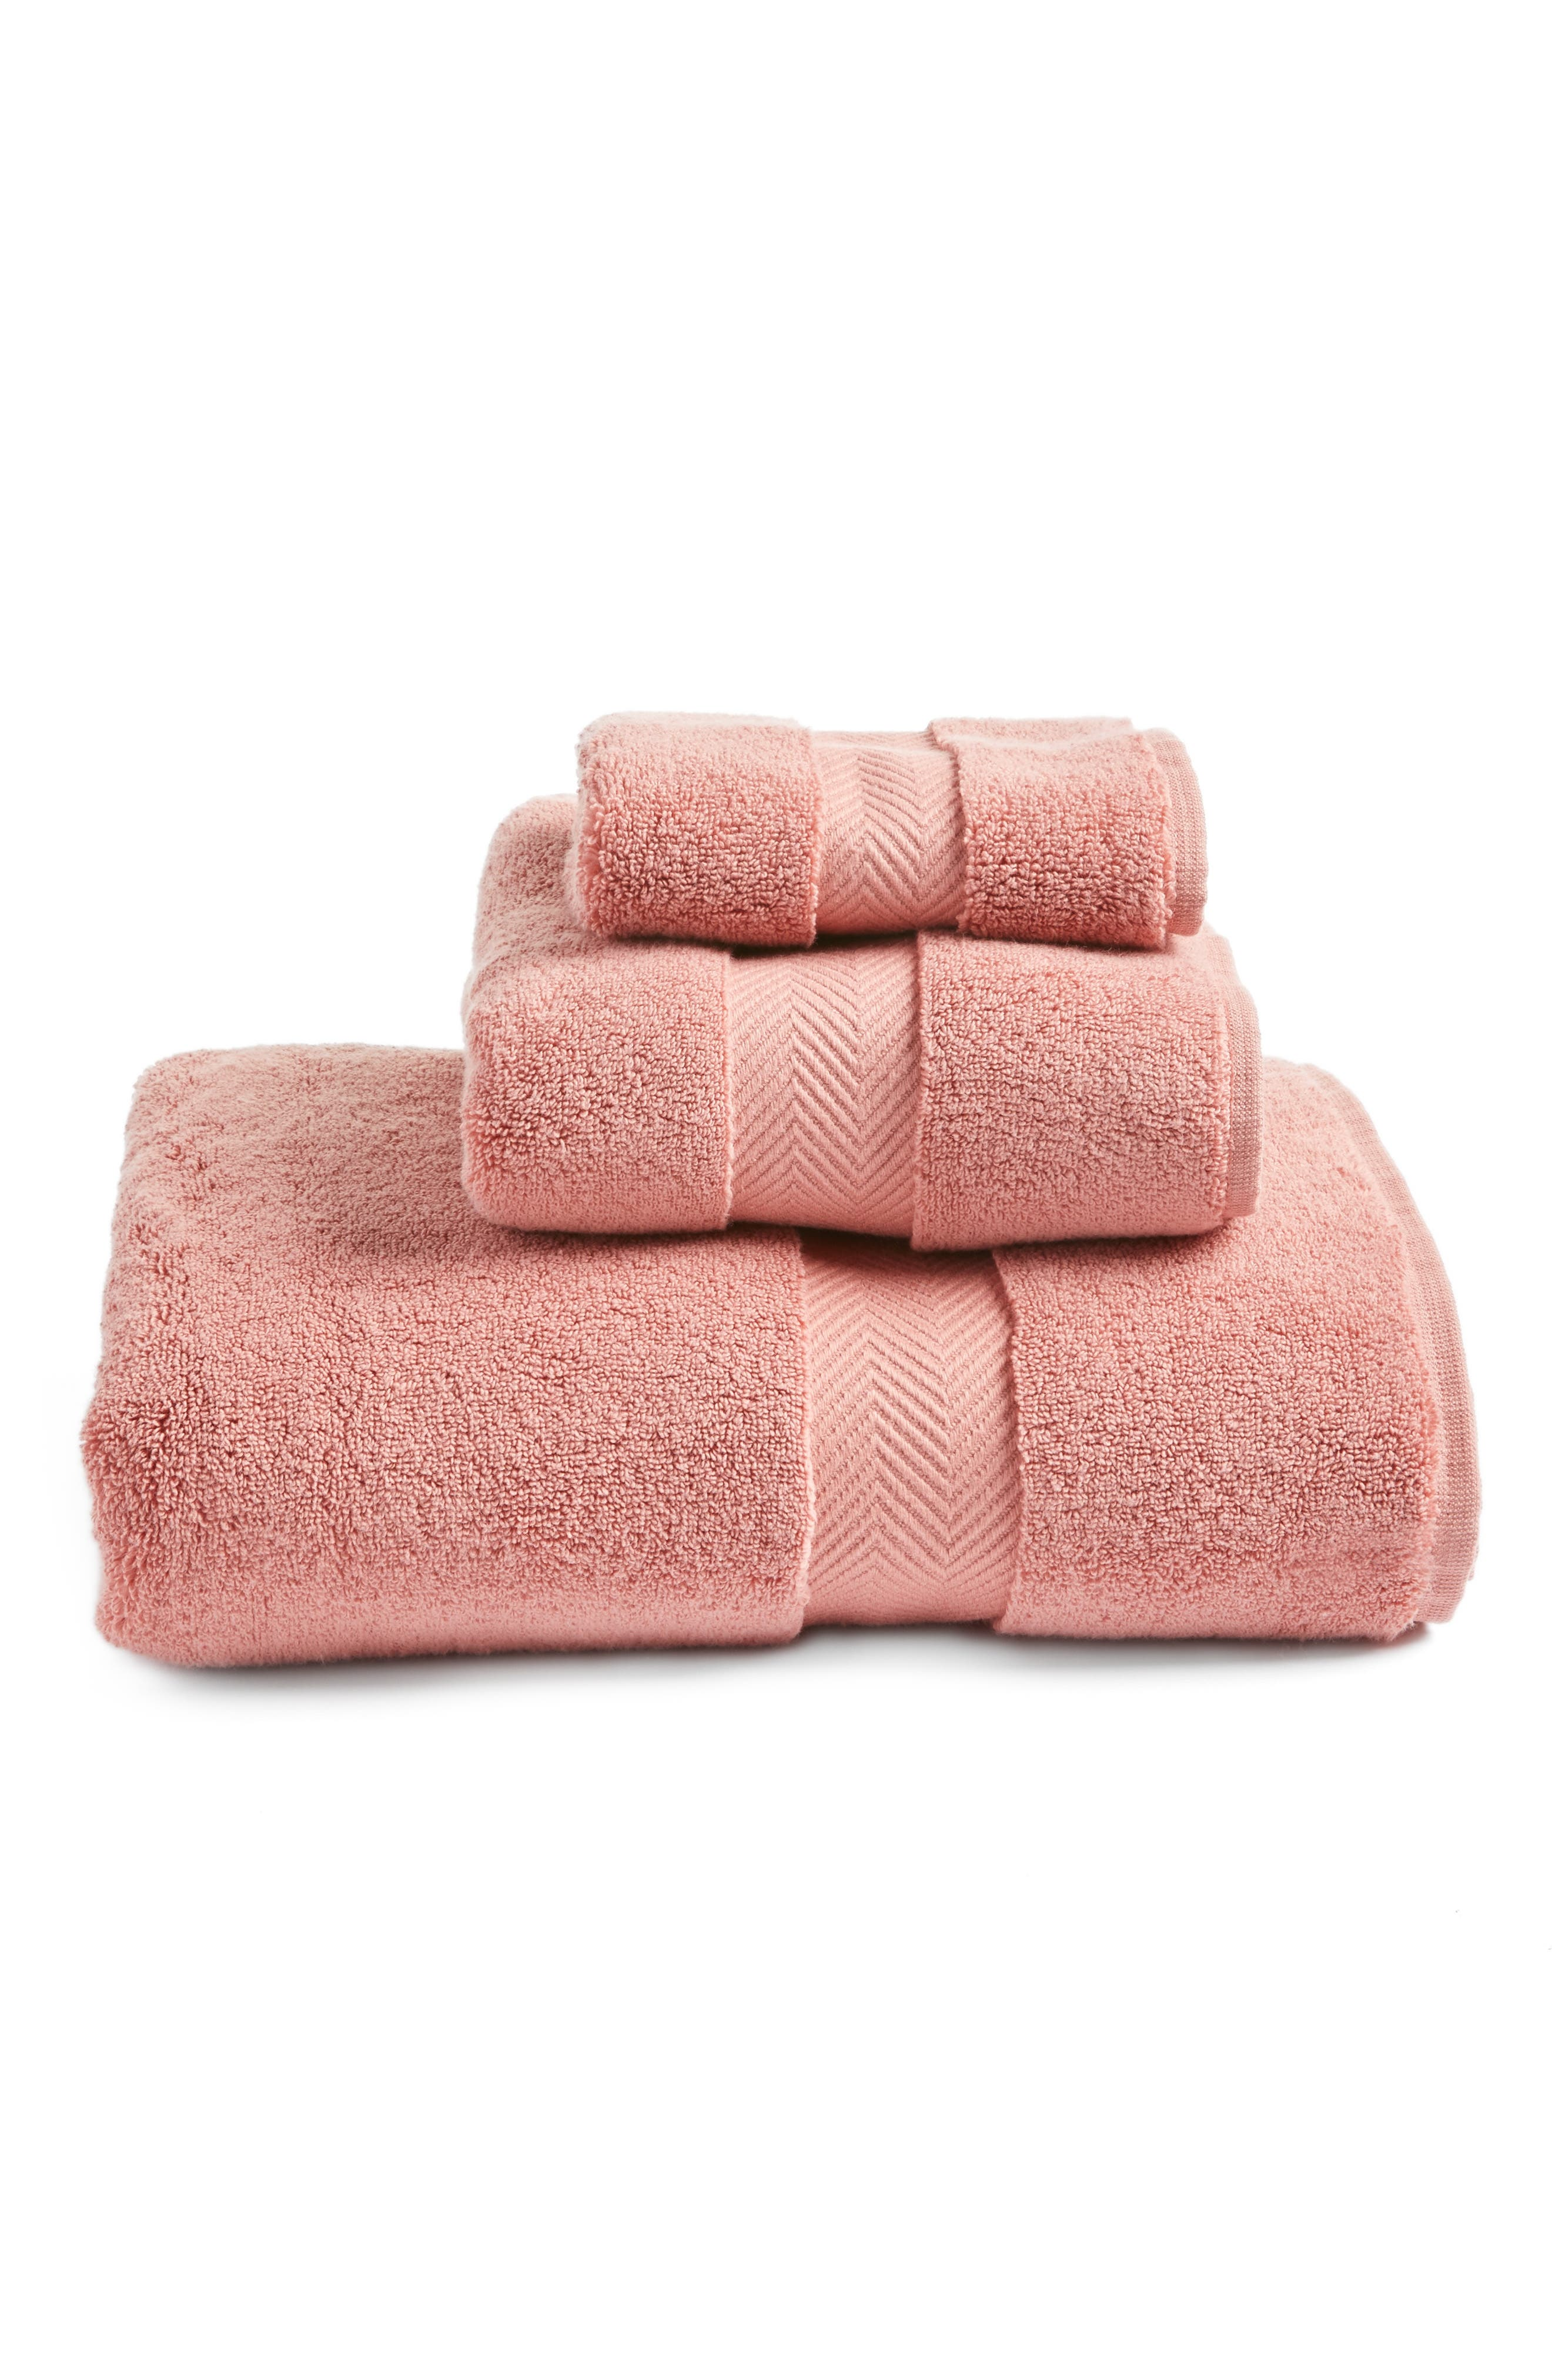 Hydrocotton Hand Towel,                             Alternate thumbnail 3, color,                             Pink Brick